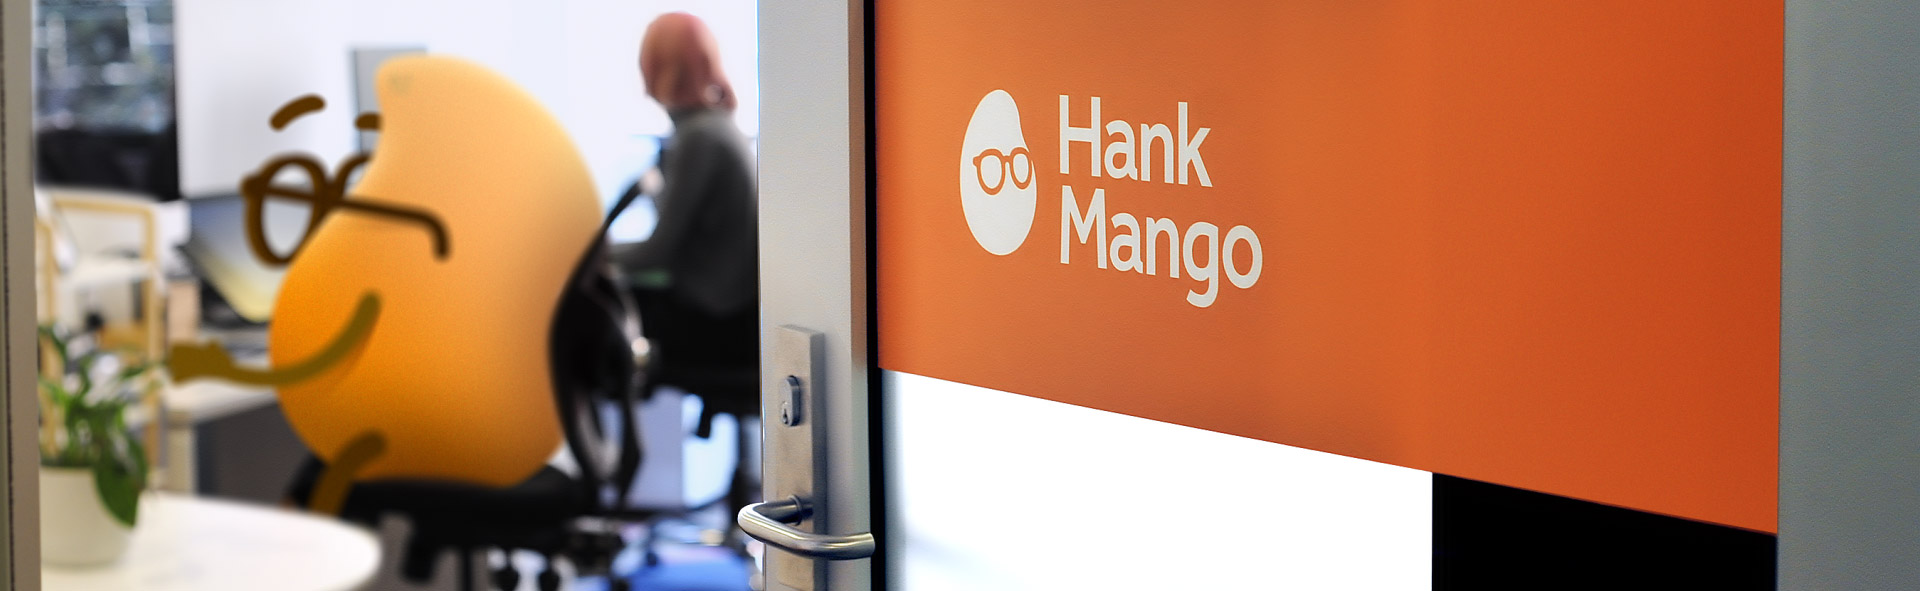 Hank_Mango_Office_SML-3